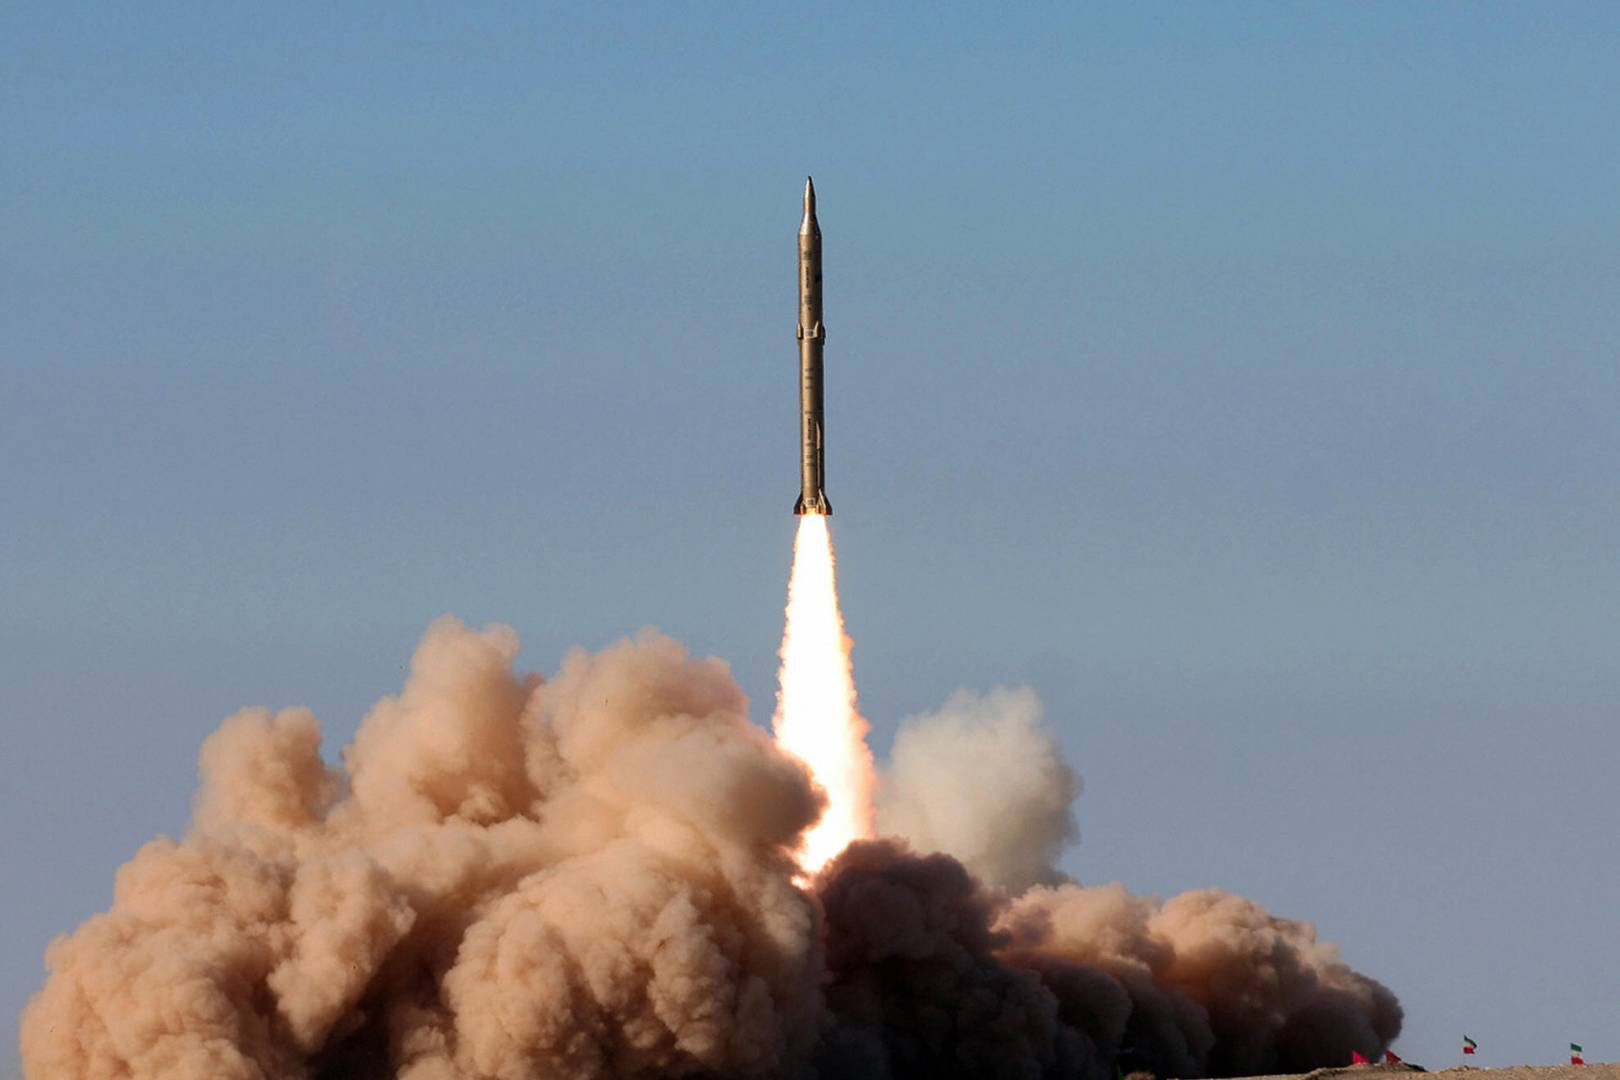 Is Iran really that close to having nuclear weapons?